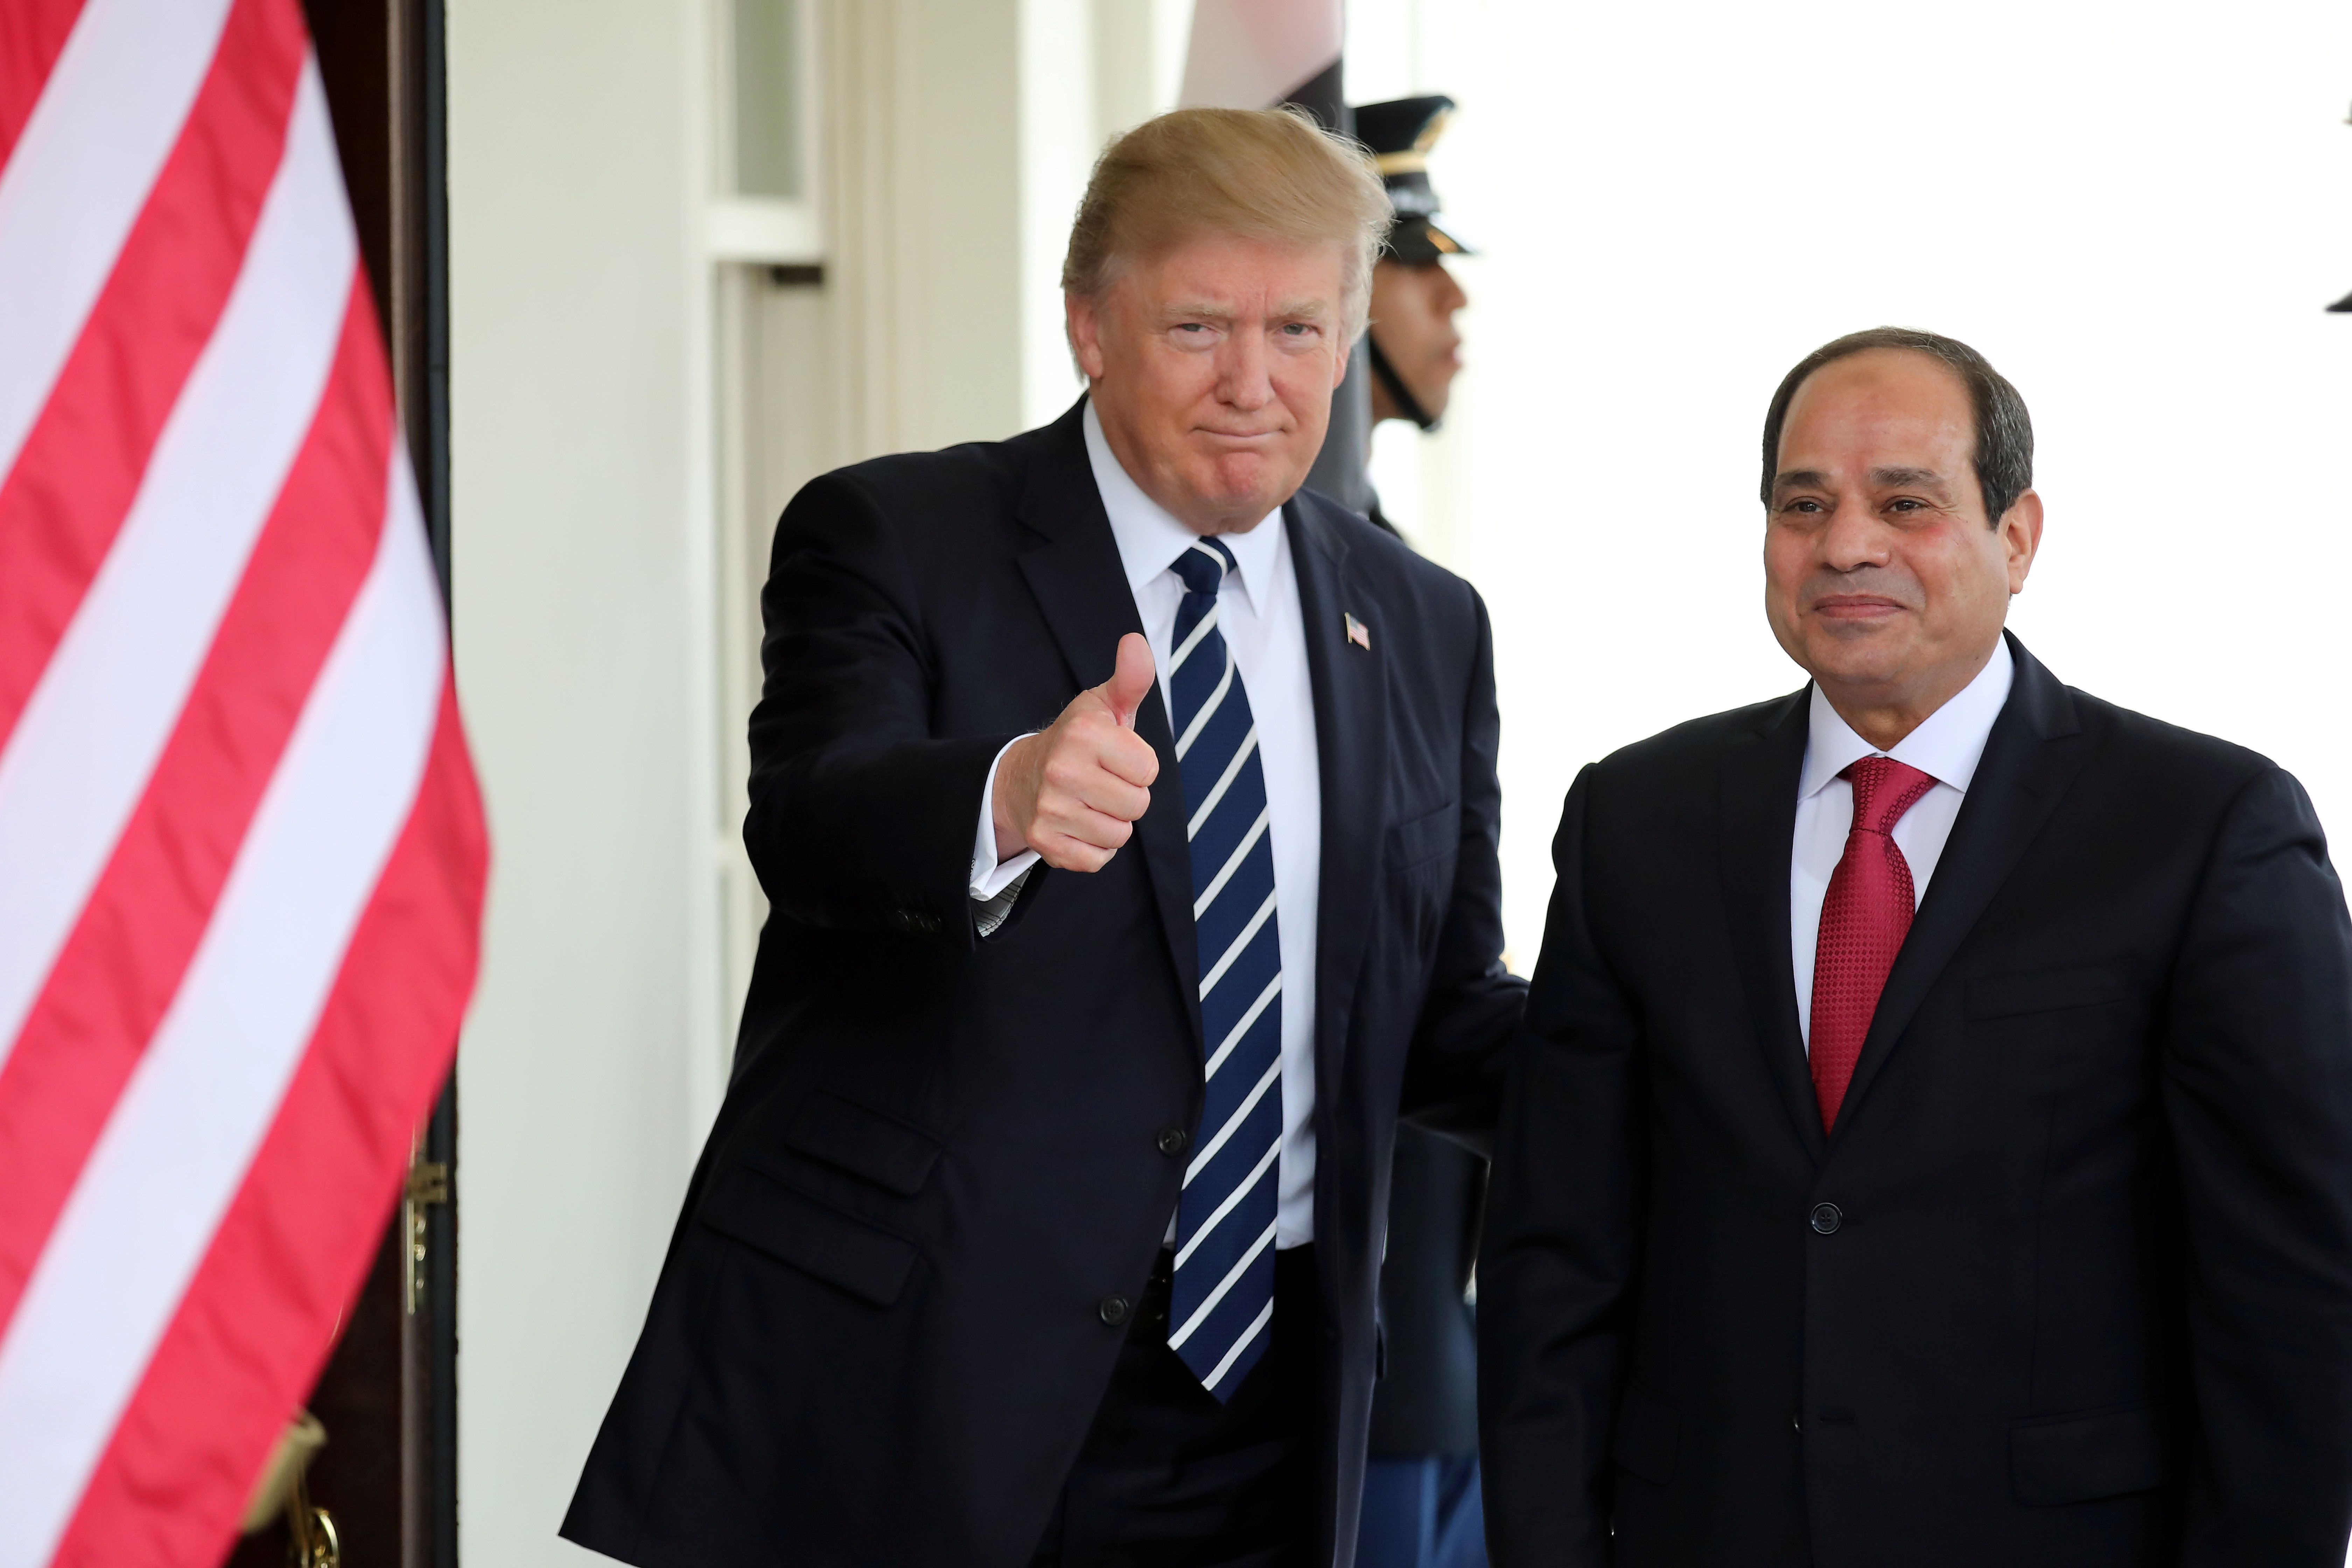 U.S. President Donald Trump welcomes Egypt's President Abdel Fattah al-Sisi at the White House in Washington, U.S., April 3, 2017. REUTERS/Carlos Barria